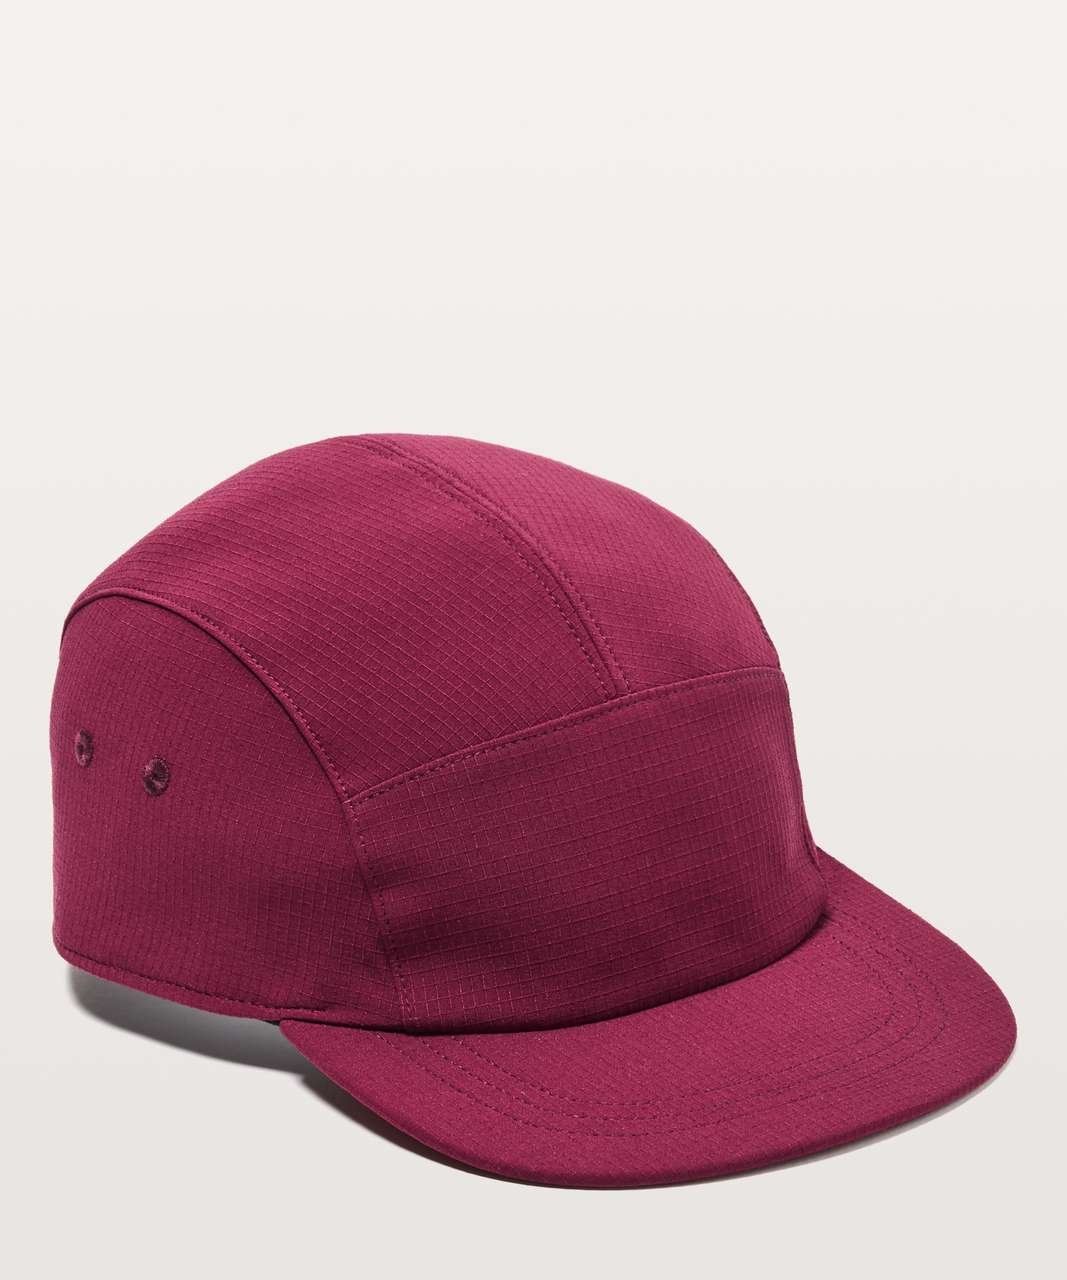 Lululemon Five Times Hat - Deep Burgundy